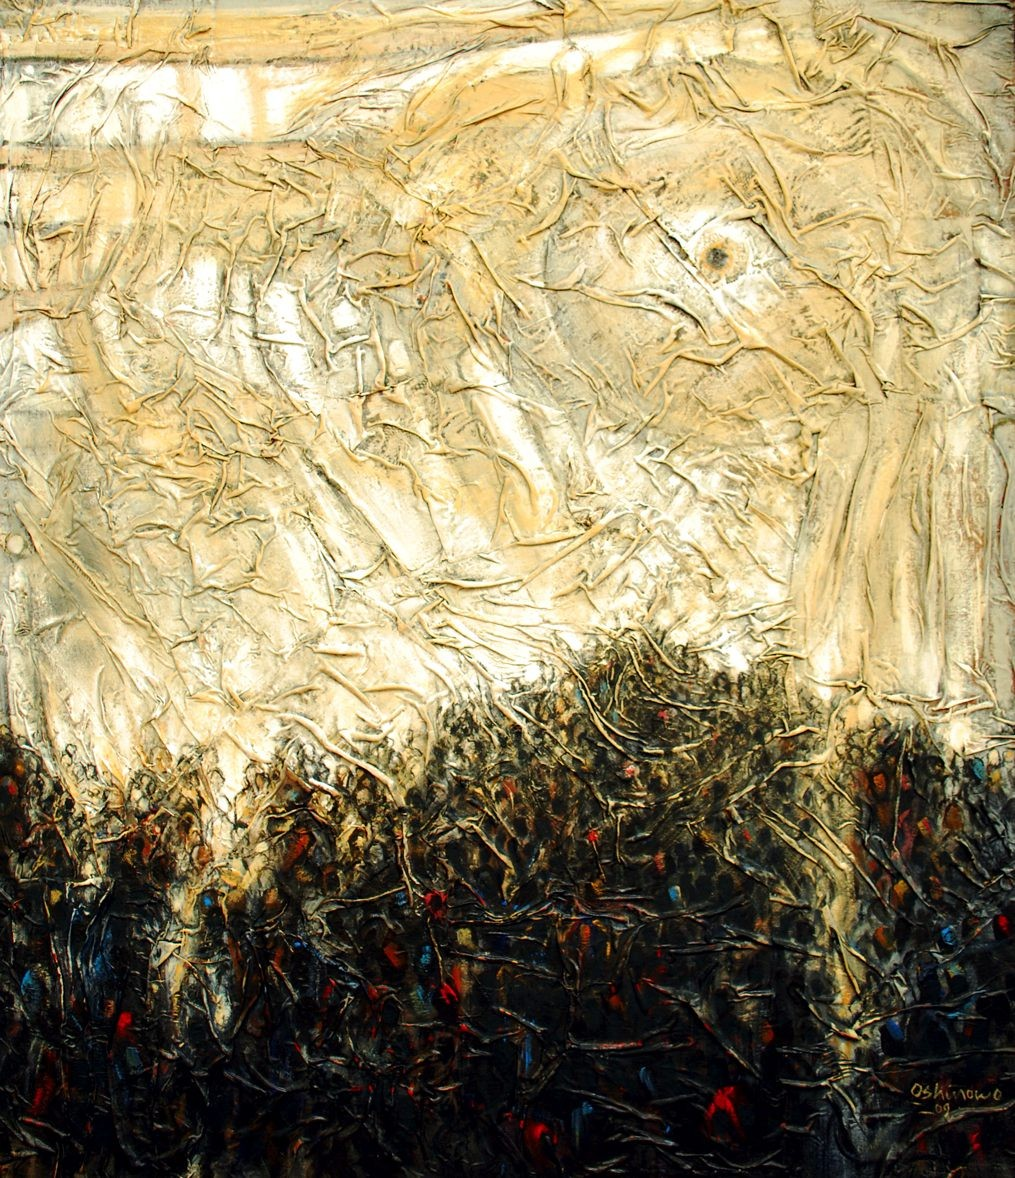 LOT-79-DIVINE-VISITATION-BY-KOLADE-OSHINOWO-56X48INCHES-OIL-ON-CANVAS